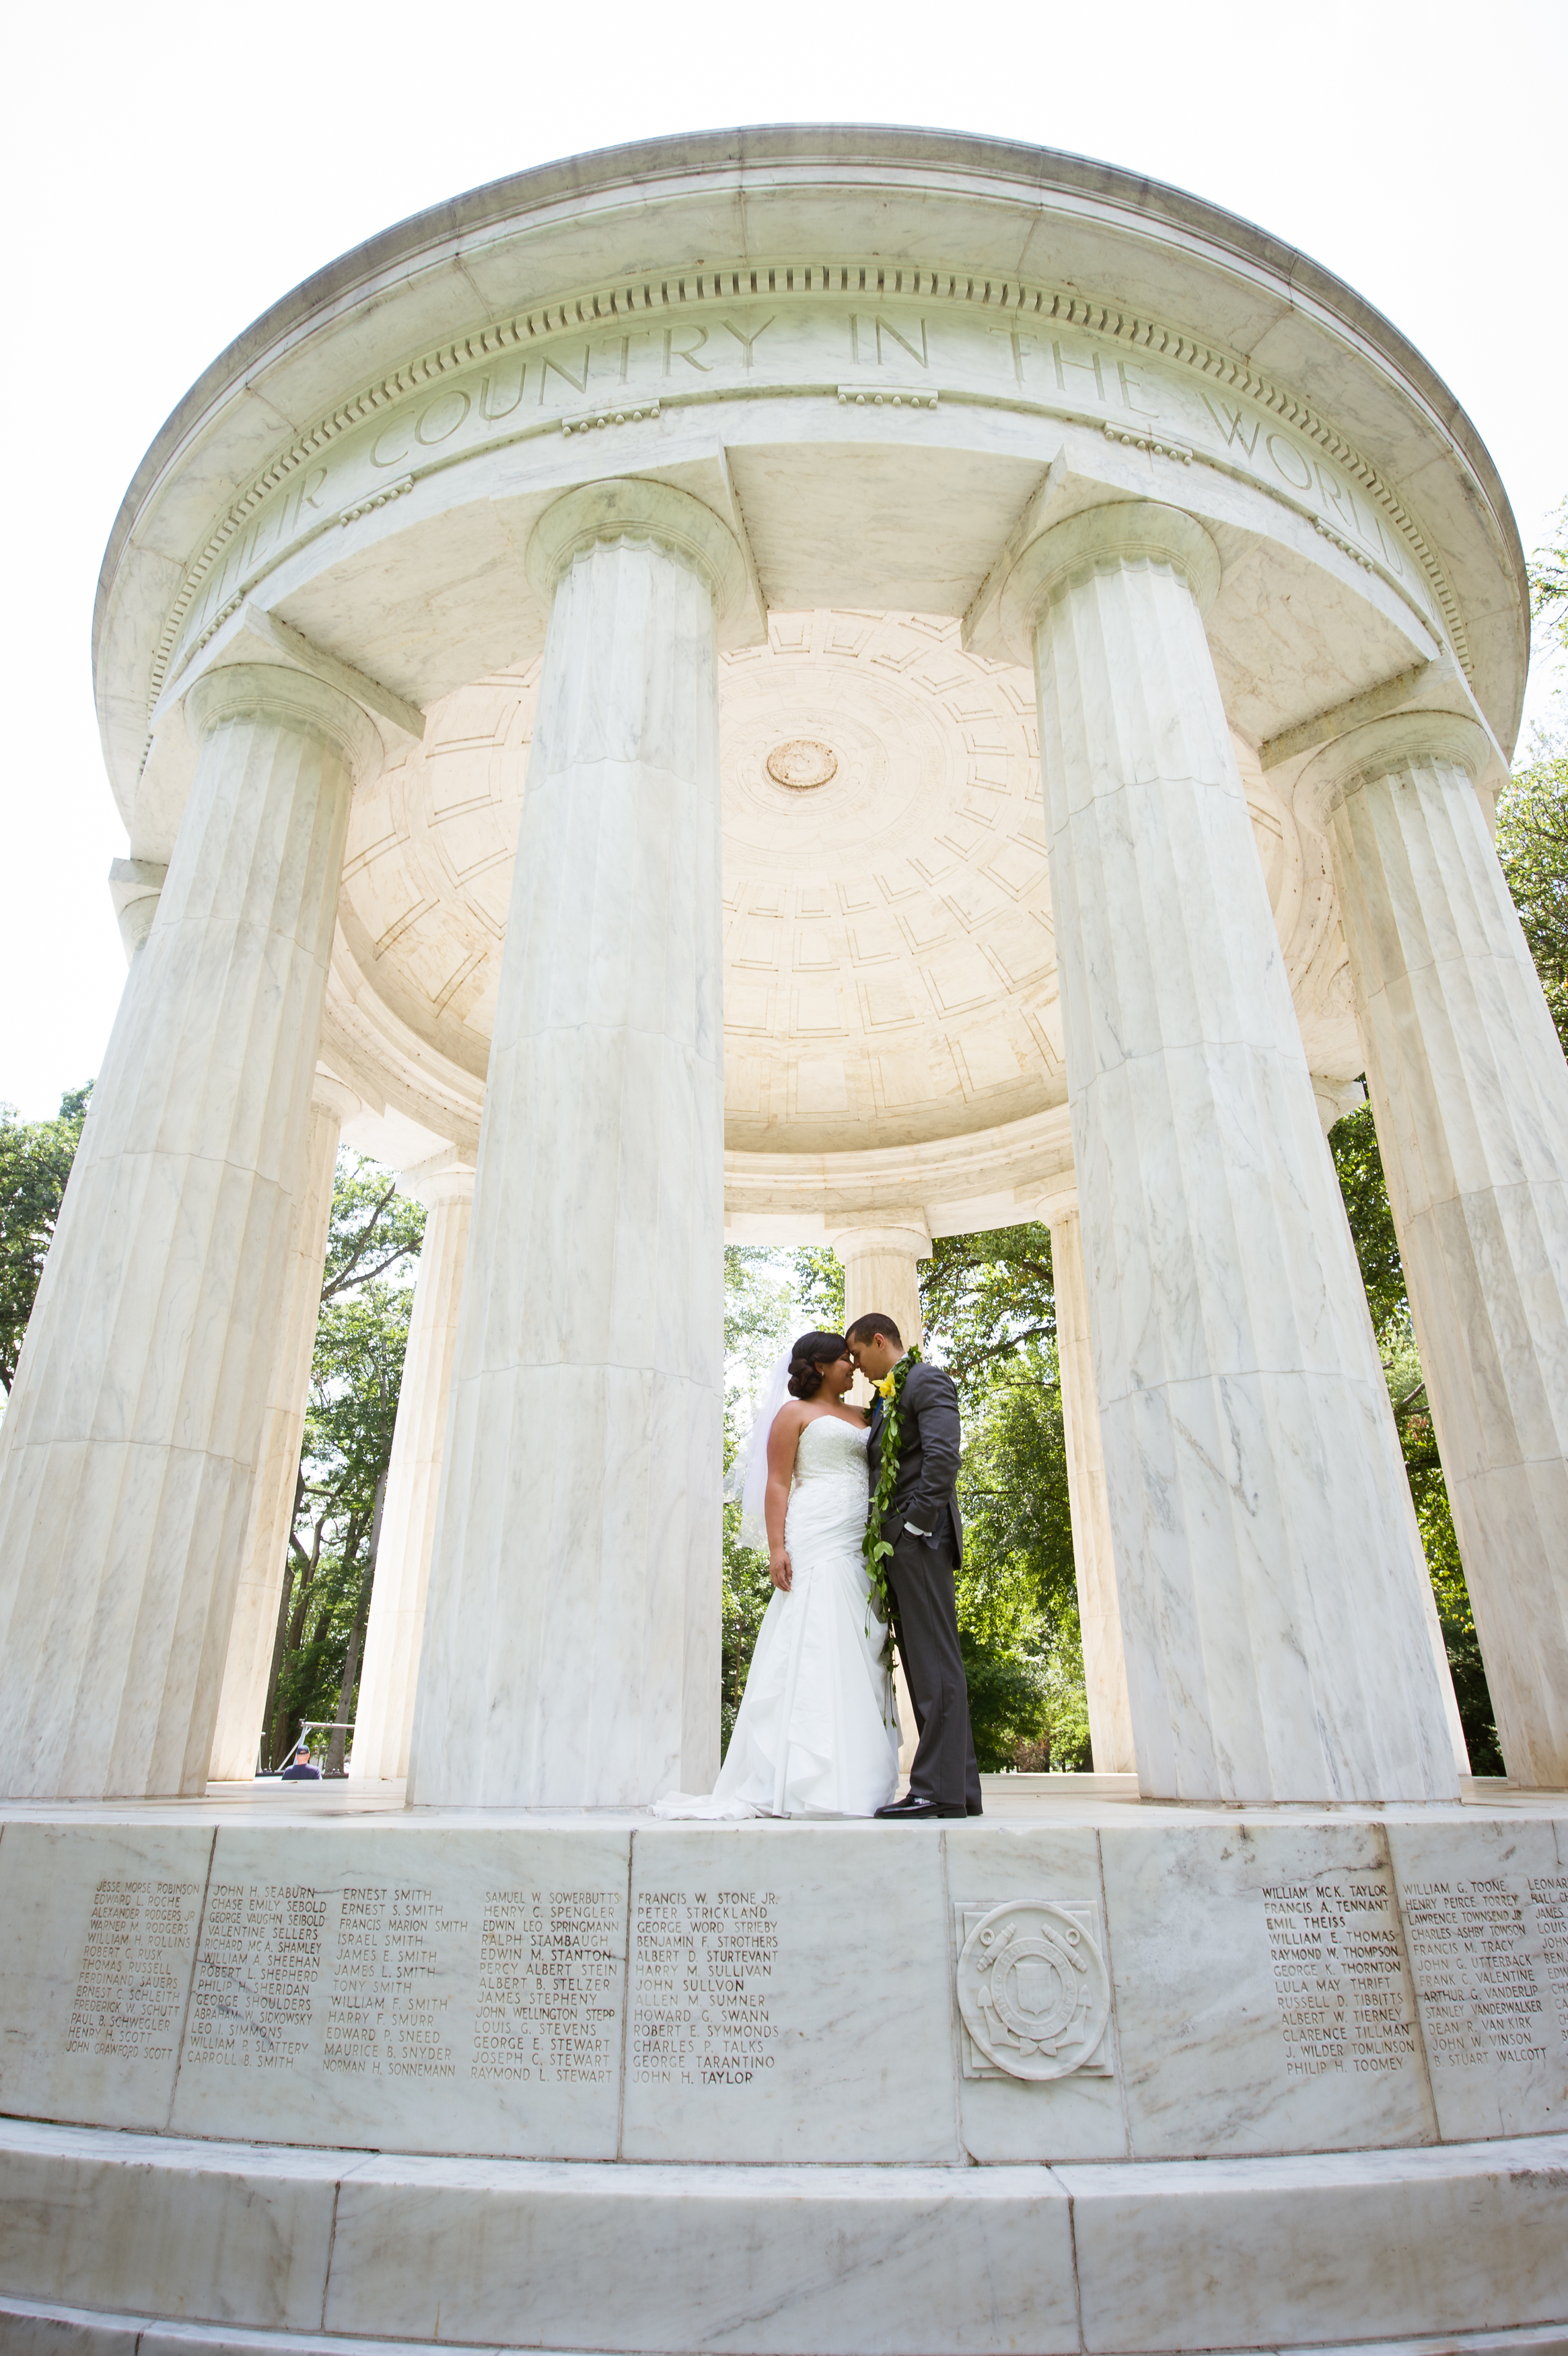 Lock and Co. Traci JD Medlock Washington DC Wedding Portrait Music Photography Videography Lifestyle Photographers Virginia Engagement Session noherosario-3.jpg